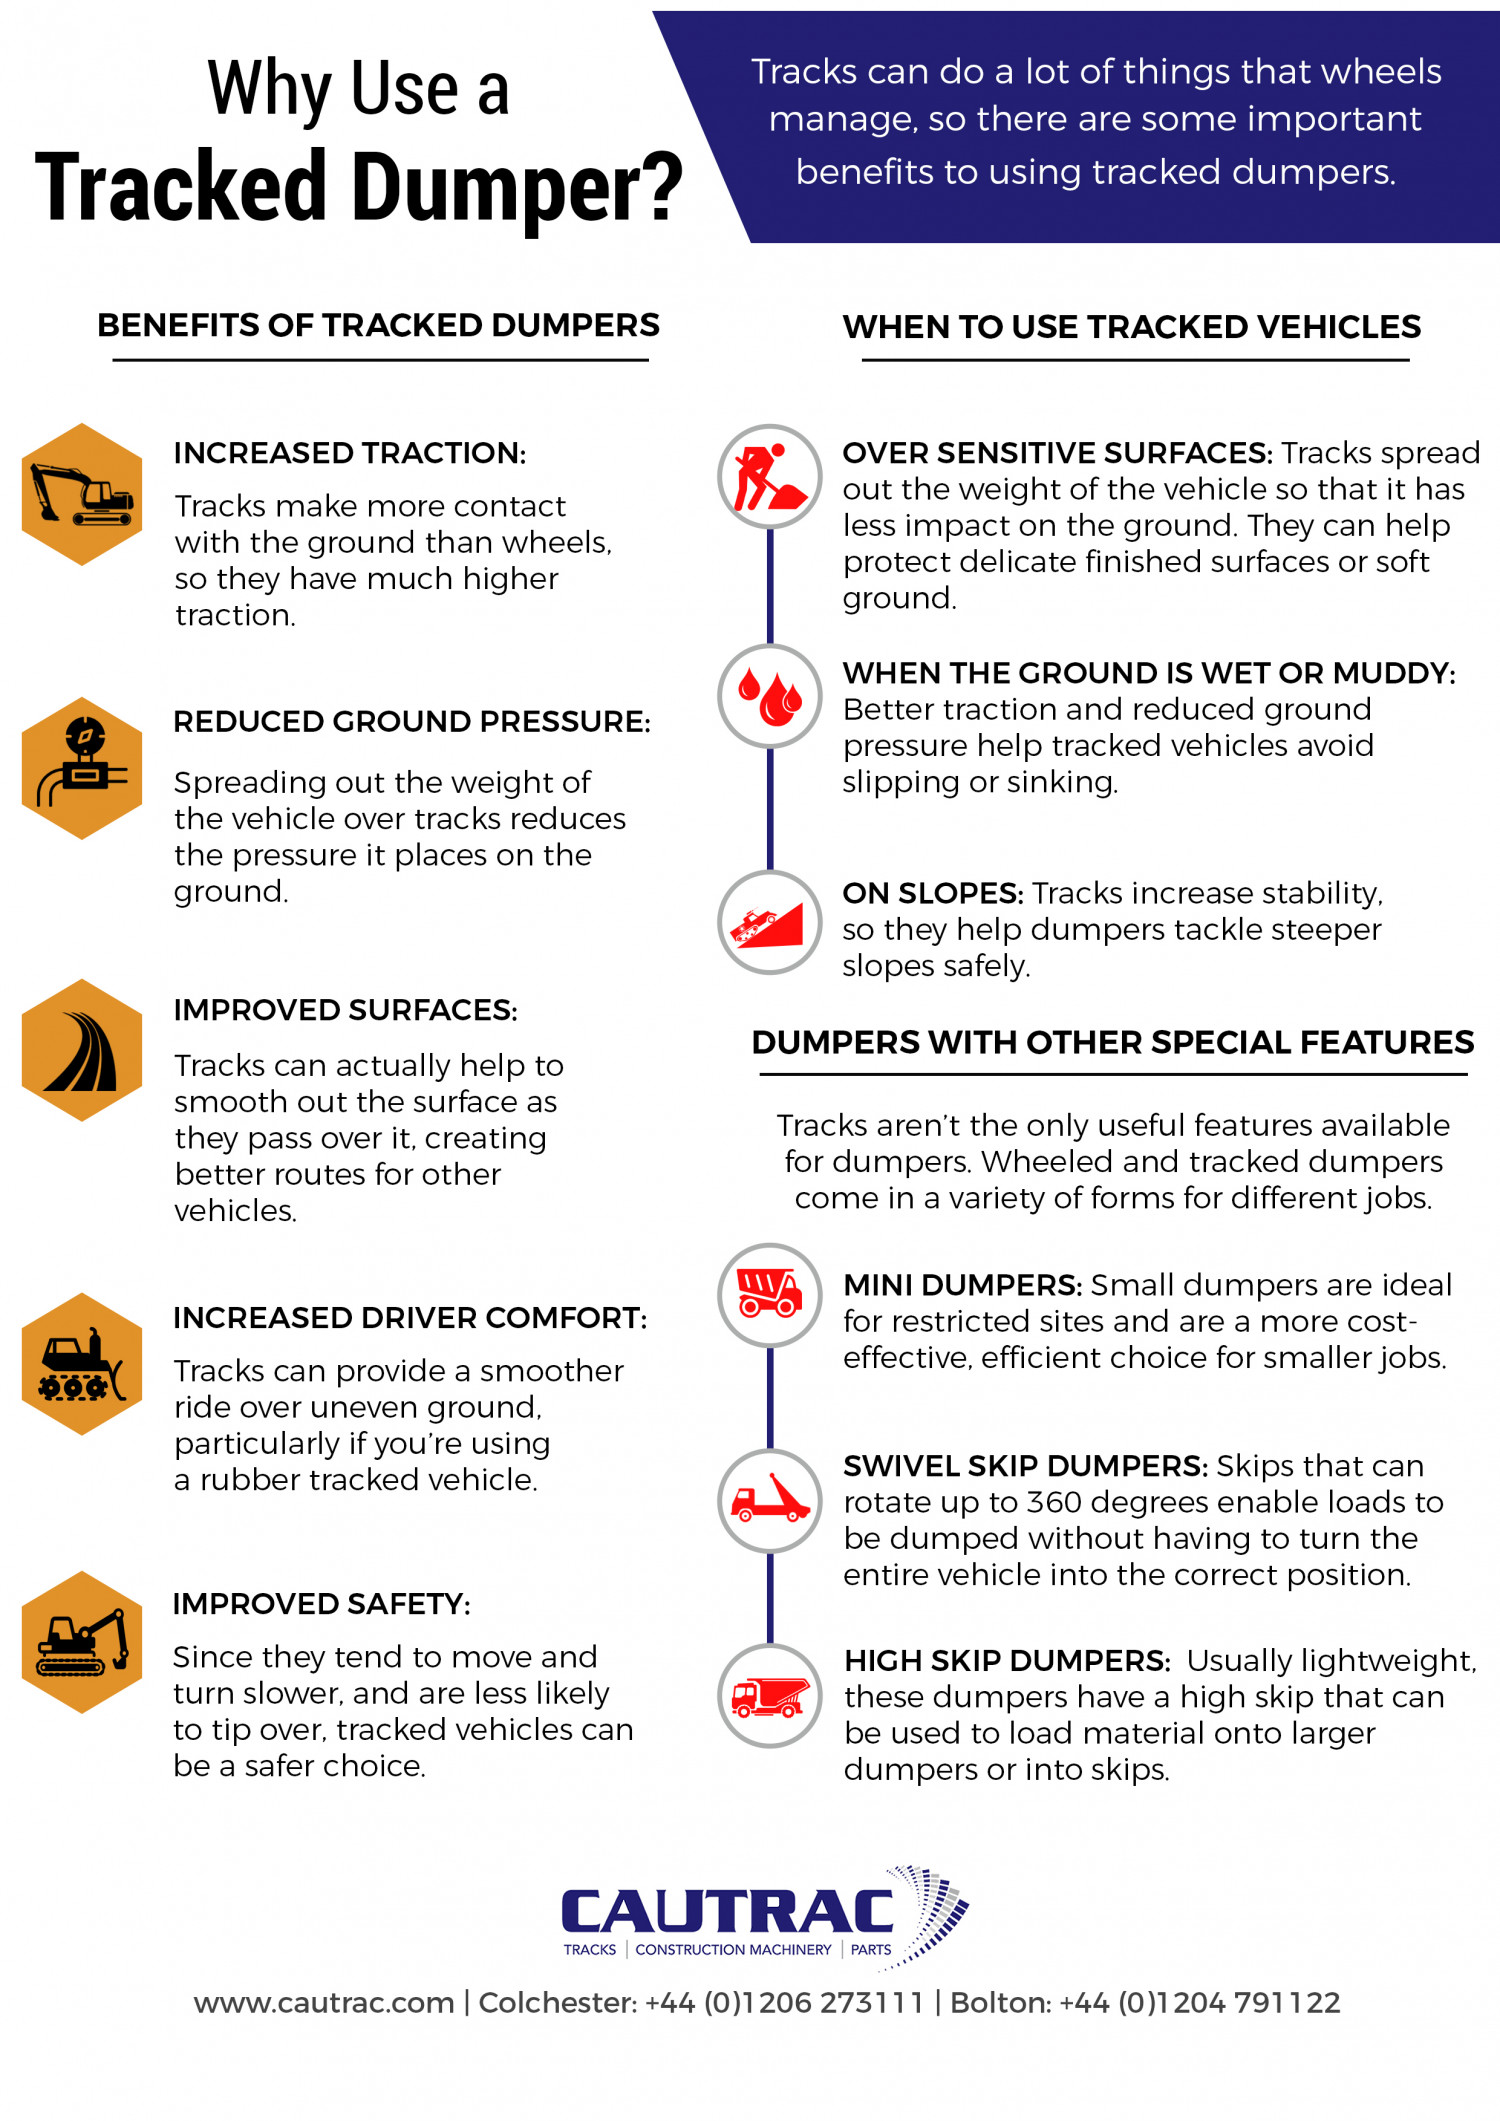 Why Use a Tracked Dumper? BENEFITS OF TRACKED DUMPERS  Infographic